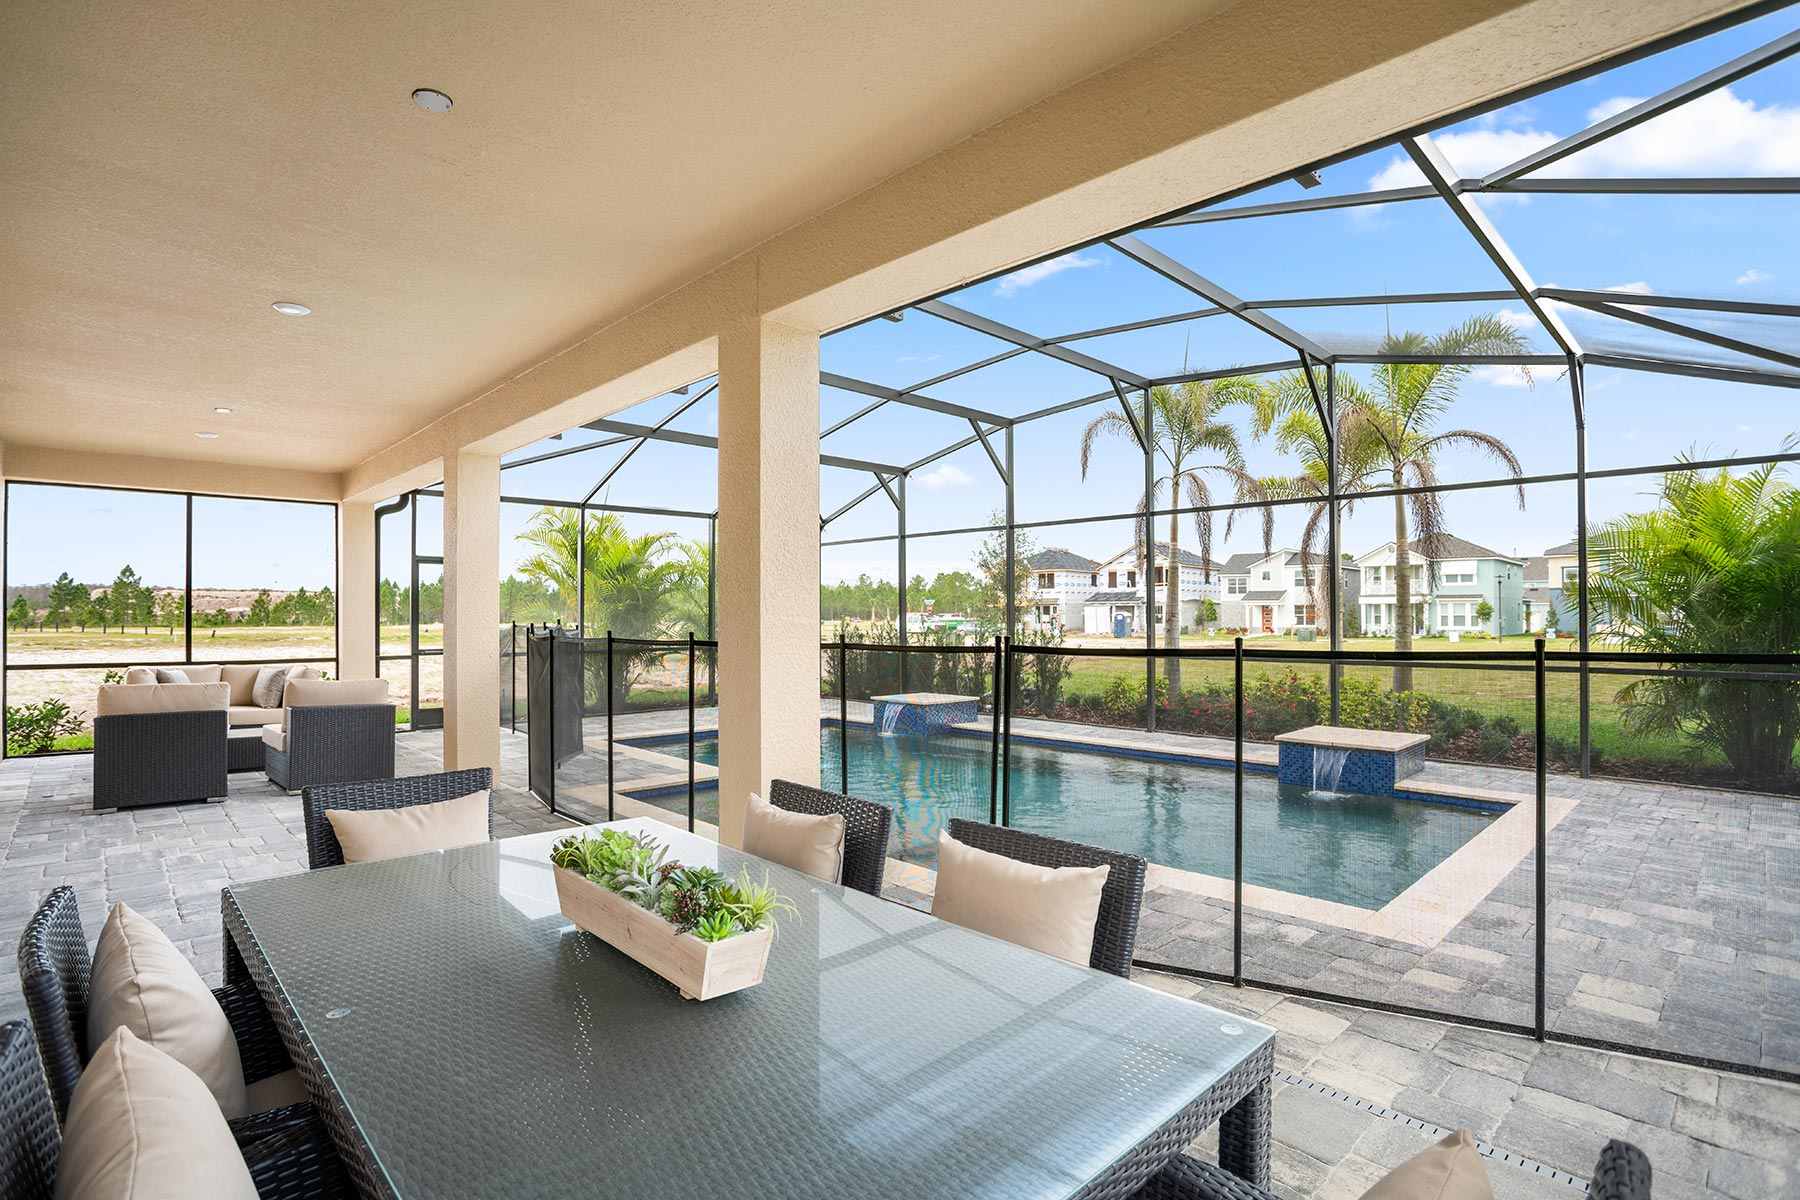 Meridian Parks Patio in Orlando Florida by Mattamy Homes